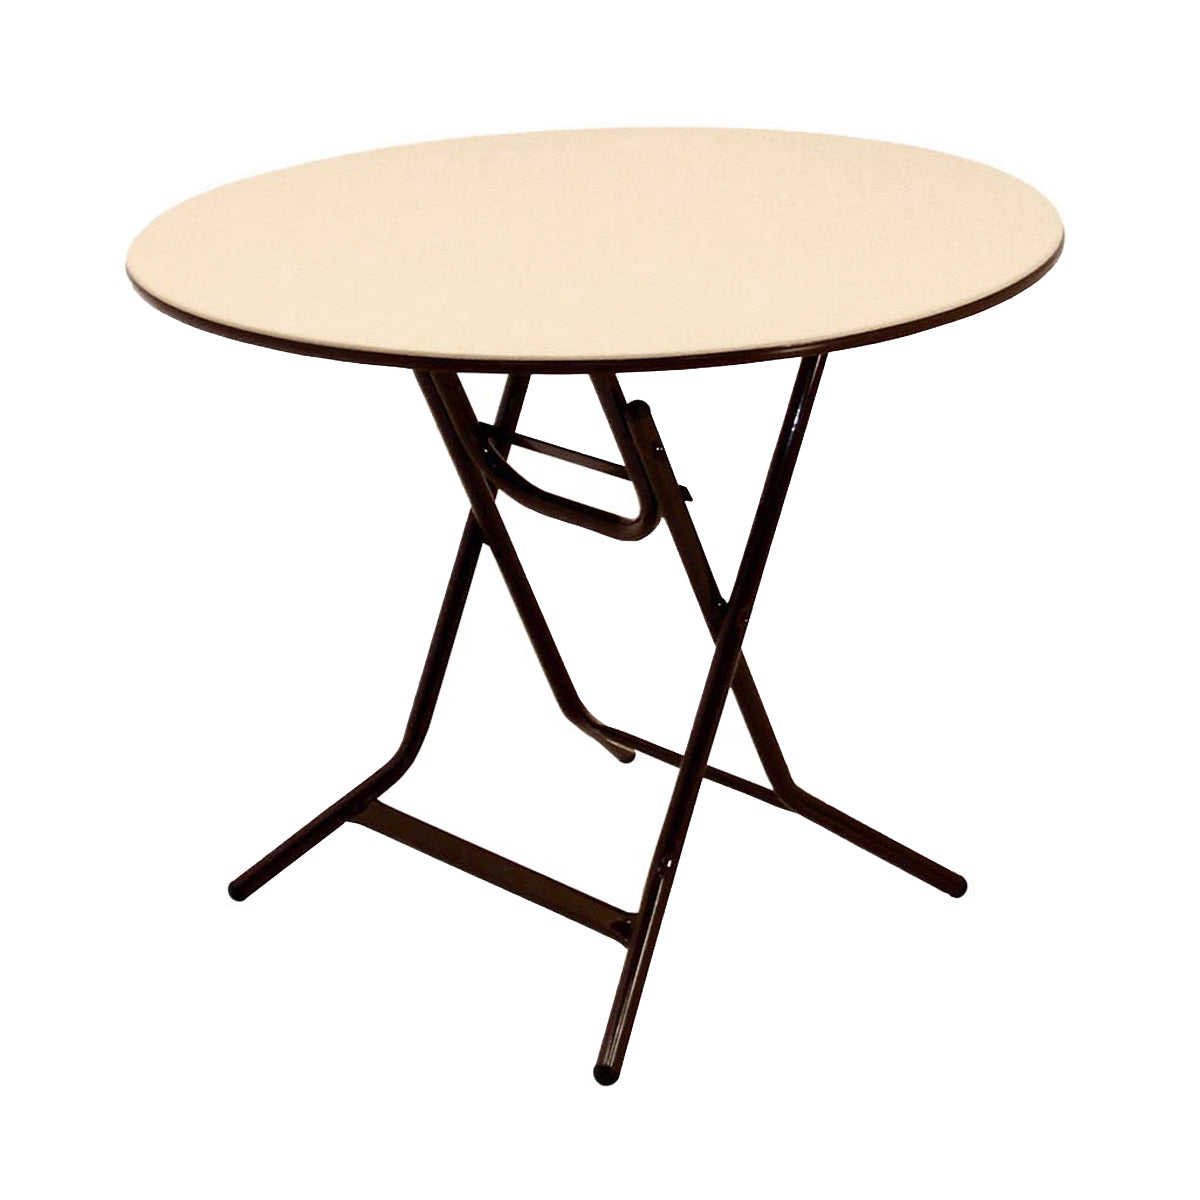 "MityLite ABS Plastic 36"" Round Xpediter Folding Table - Beige"